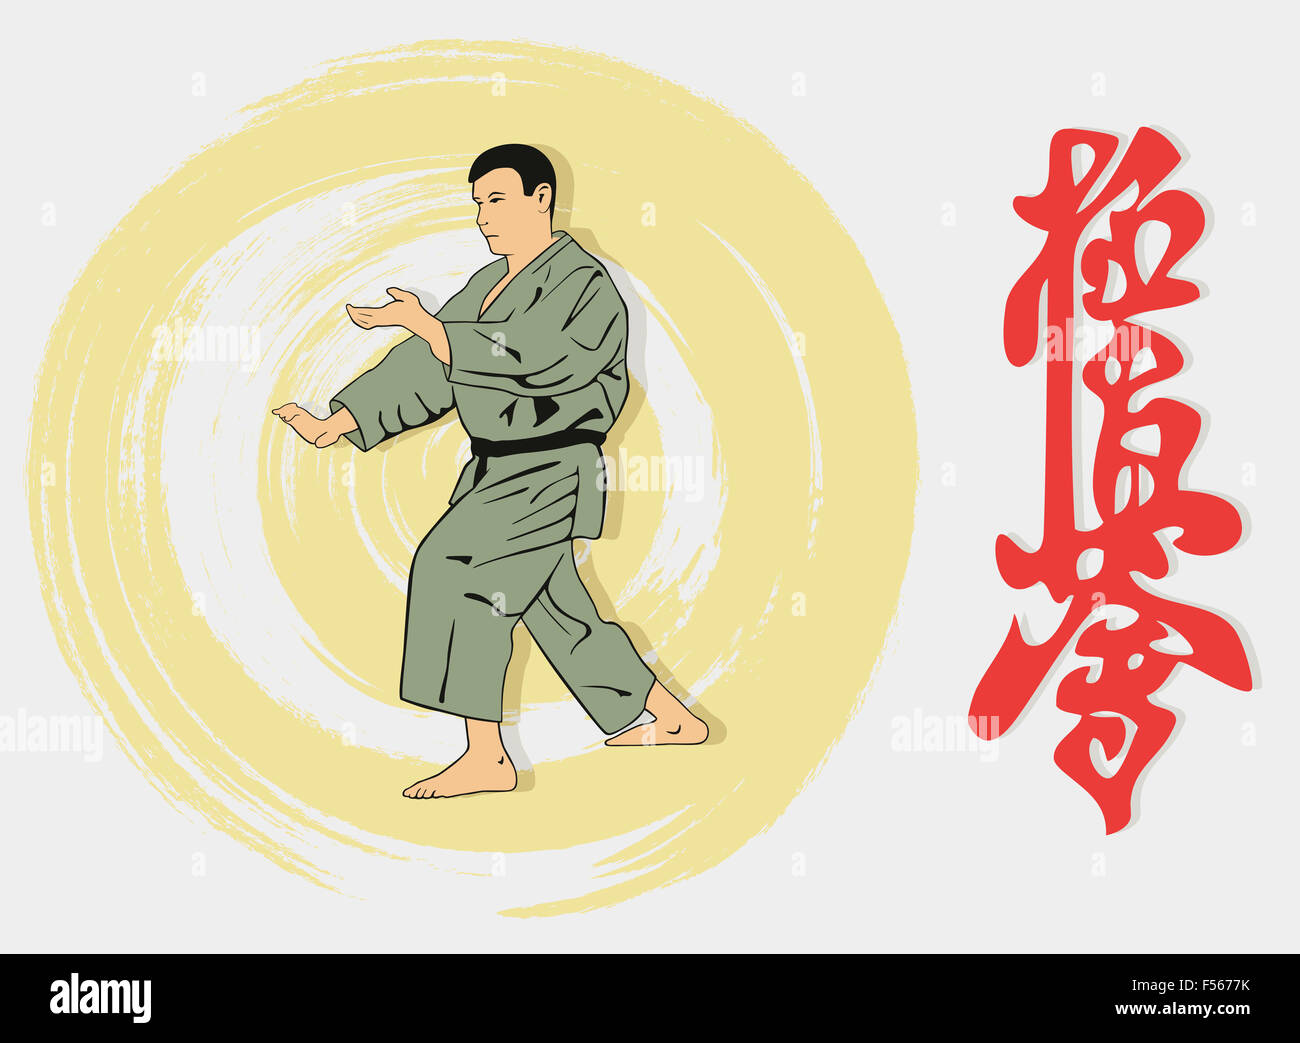 The man showing karate and a hieroglyph. - Stock Image